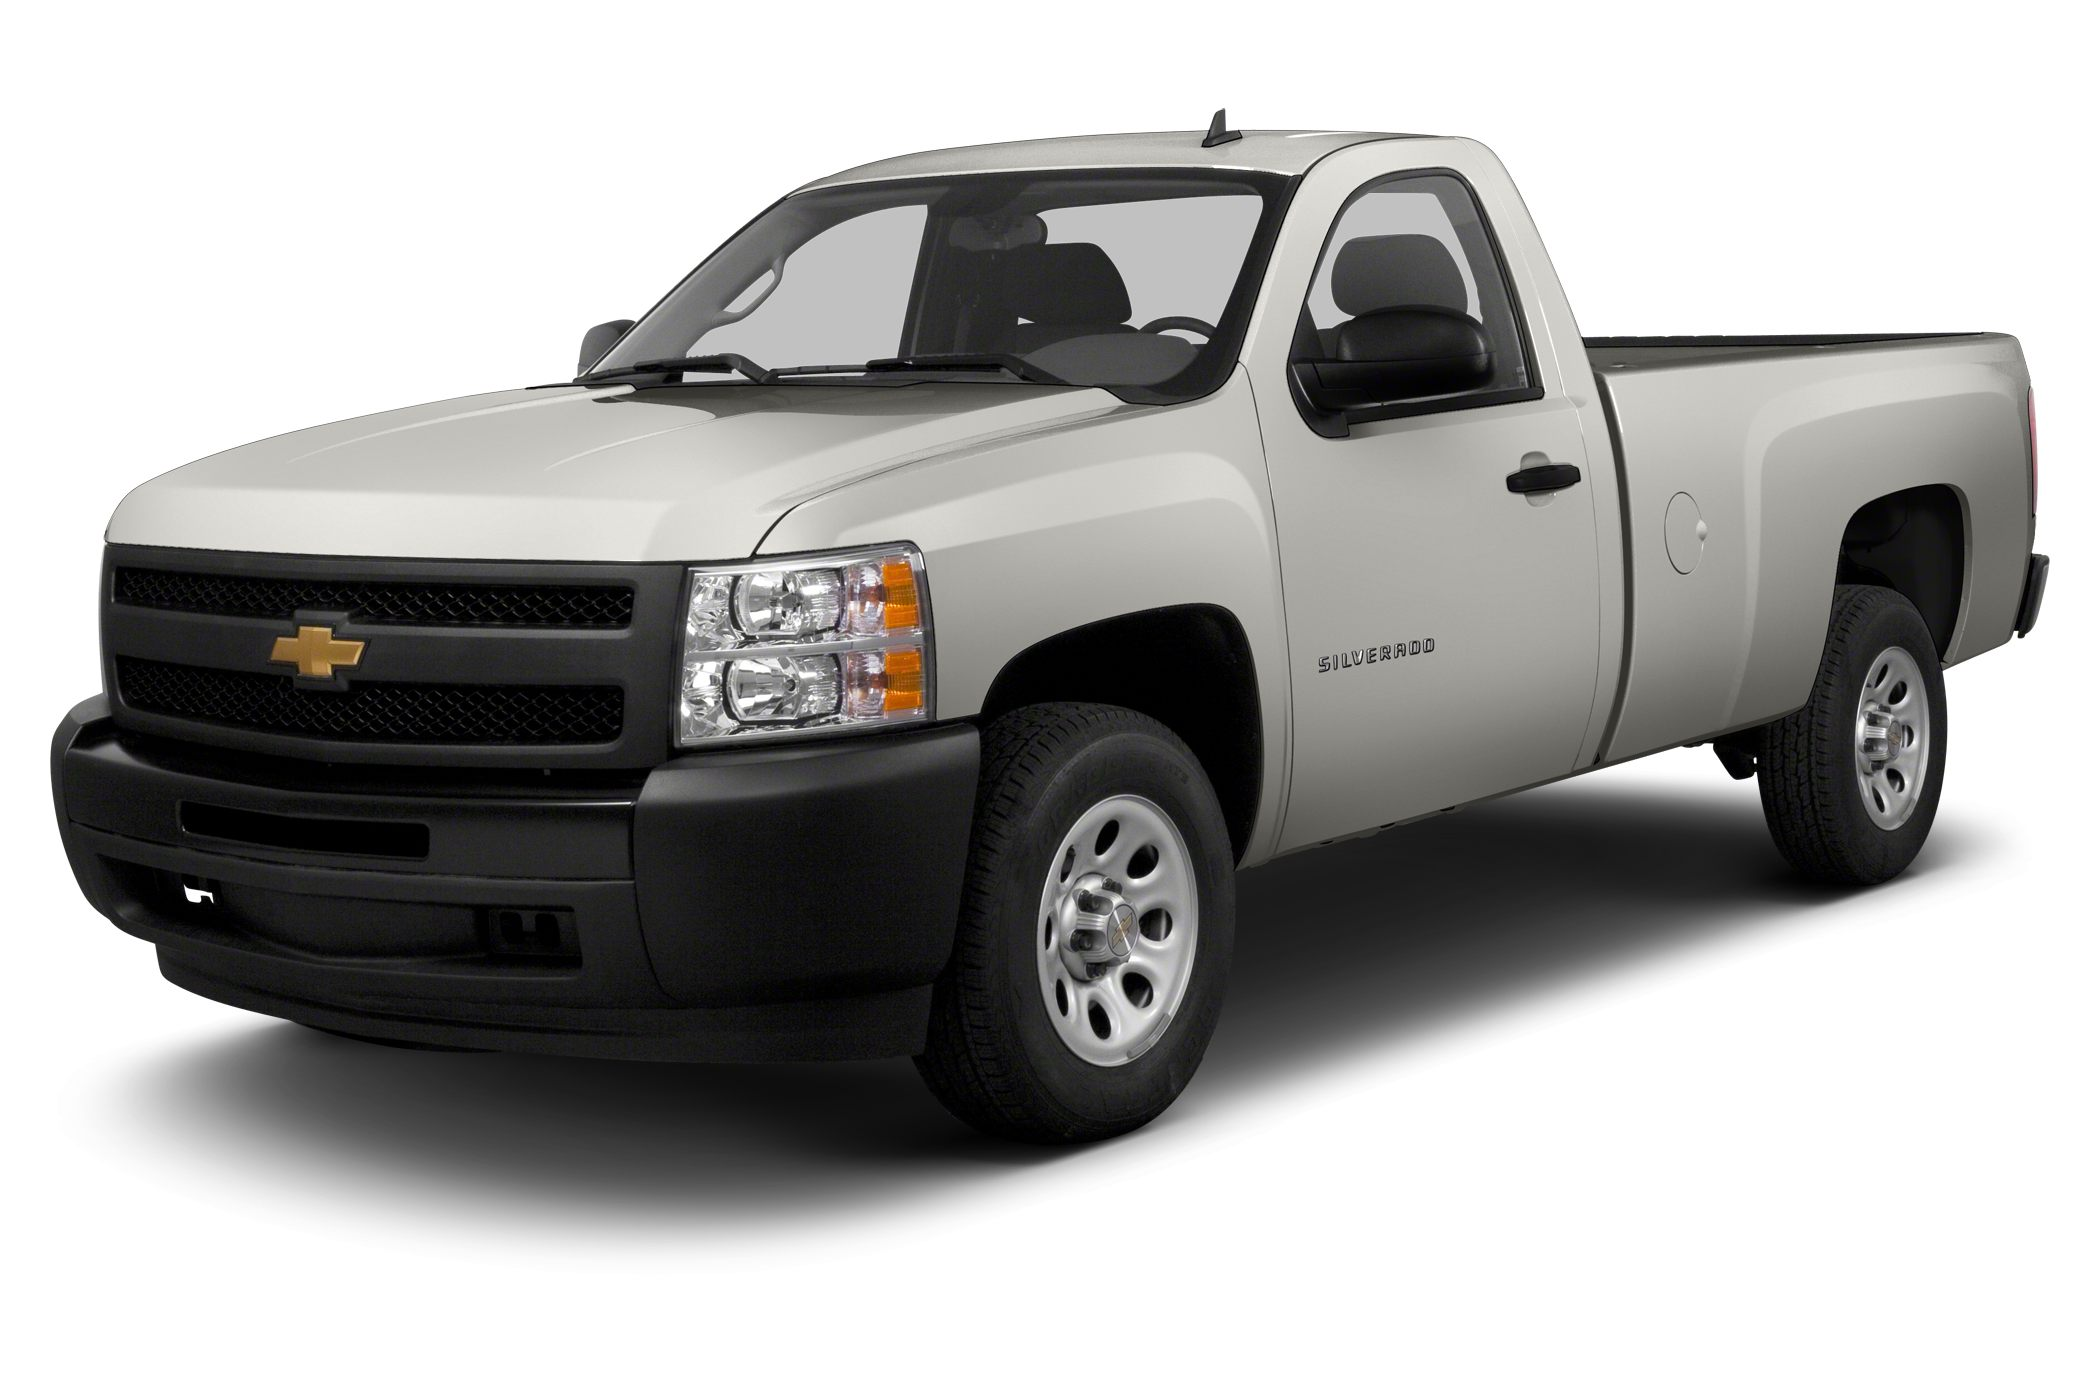 2013 Chevrolet Silverado 1500 LT Extended Cab Pickup for sale in Atlanta for $25,987 with 47,313 miles